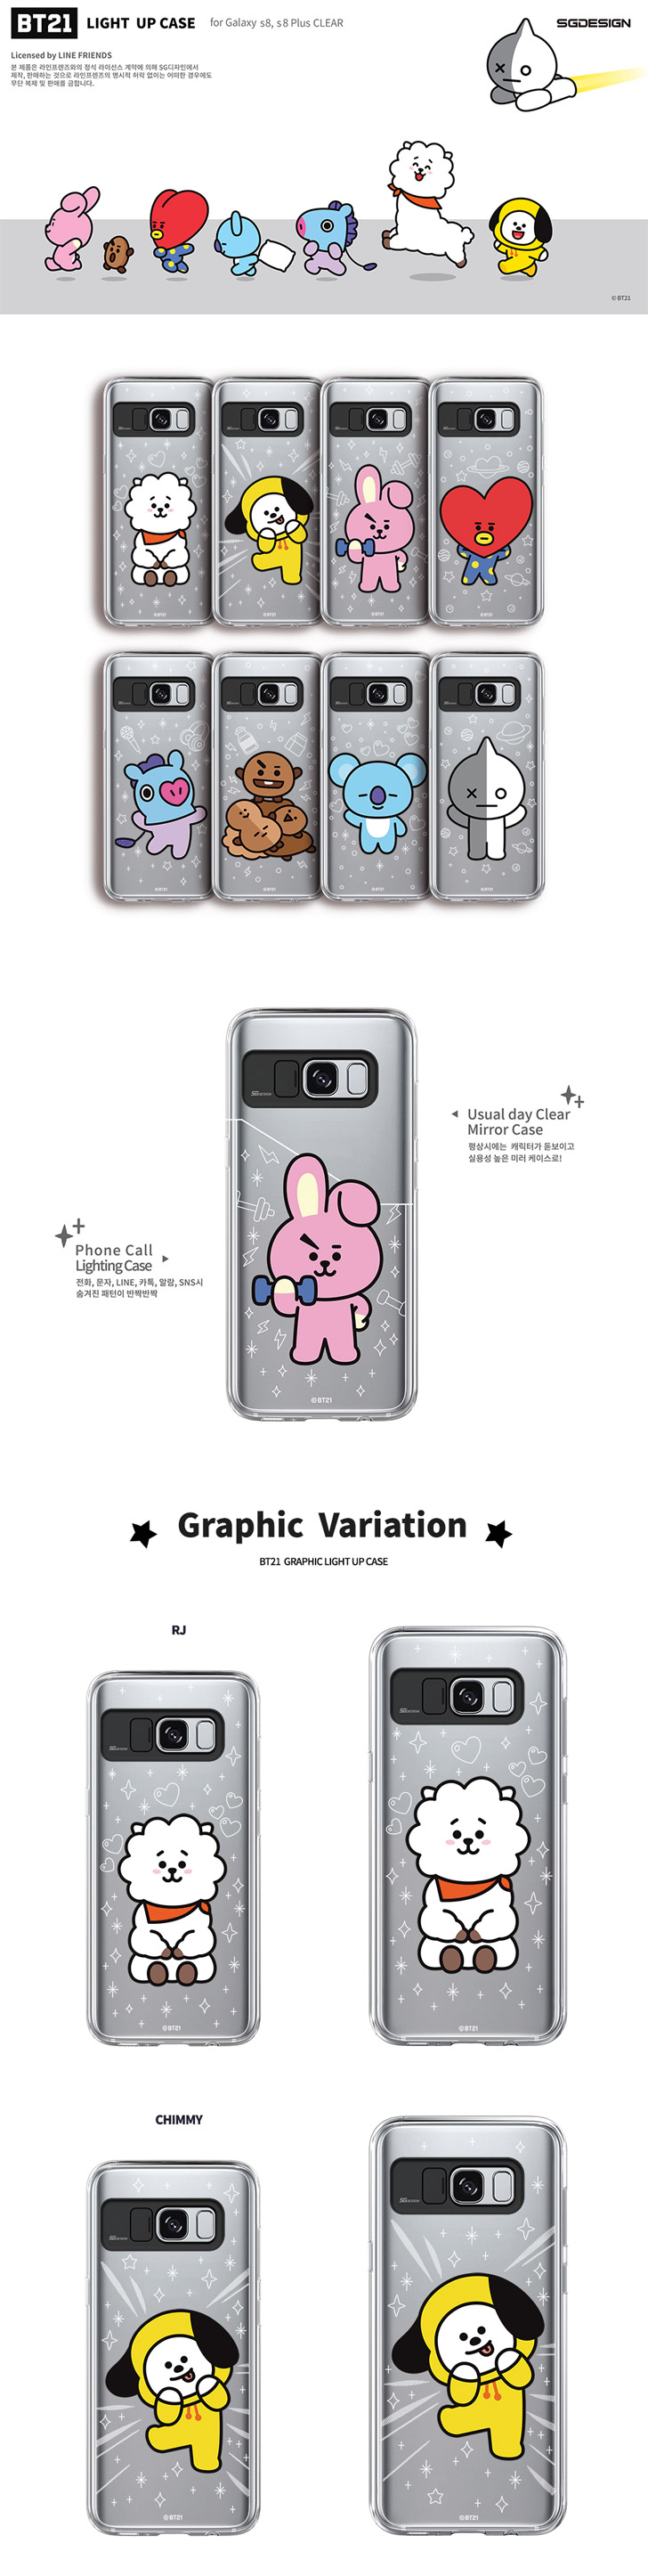 online store 4fc5a 93fd9 [BT21] Light Up Case Galaxy S8 Plus (Soft)